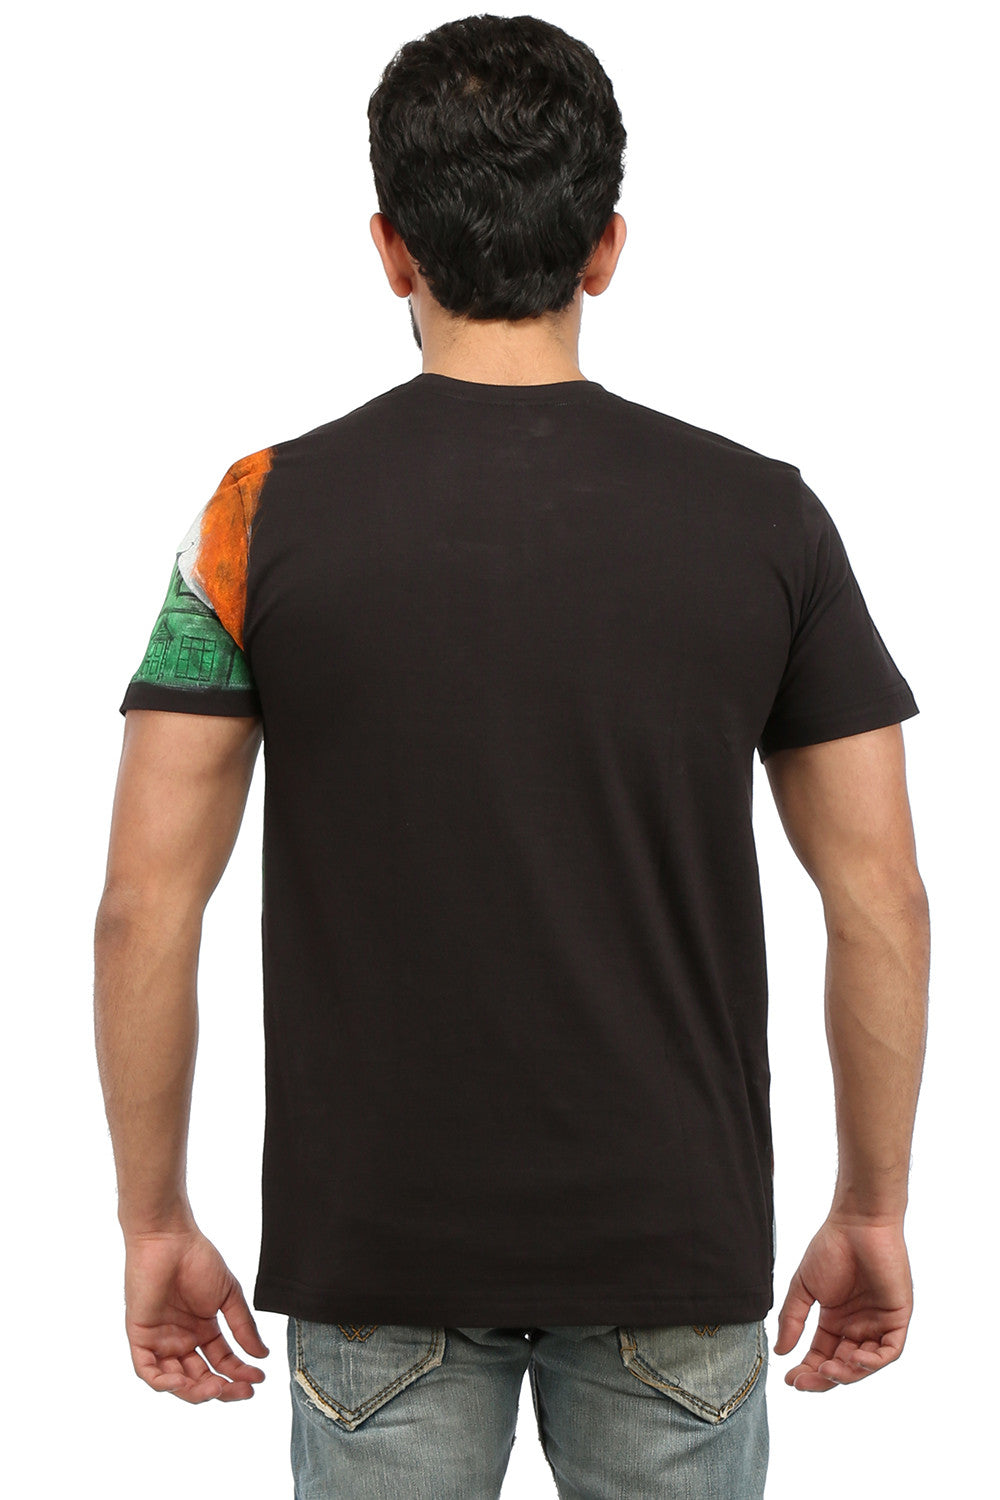 Hand-painted Unified India Black T-shirt - Rang Rage  - 2